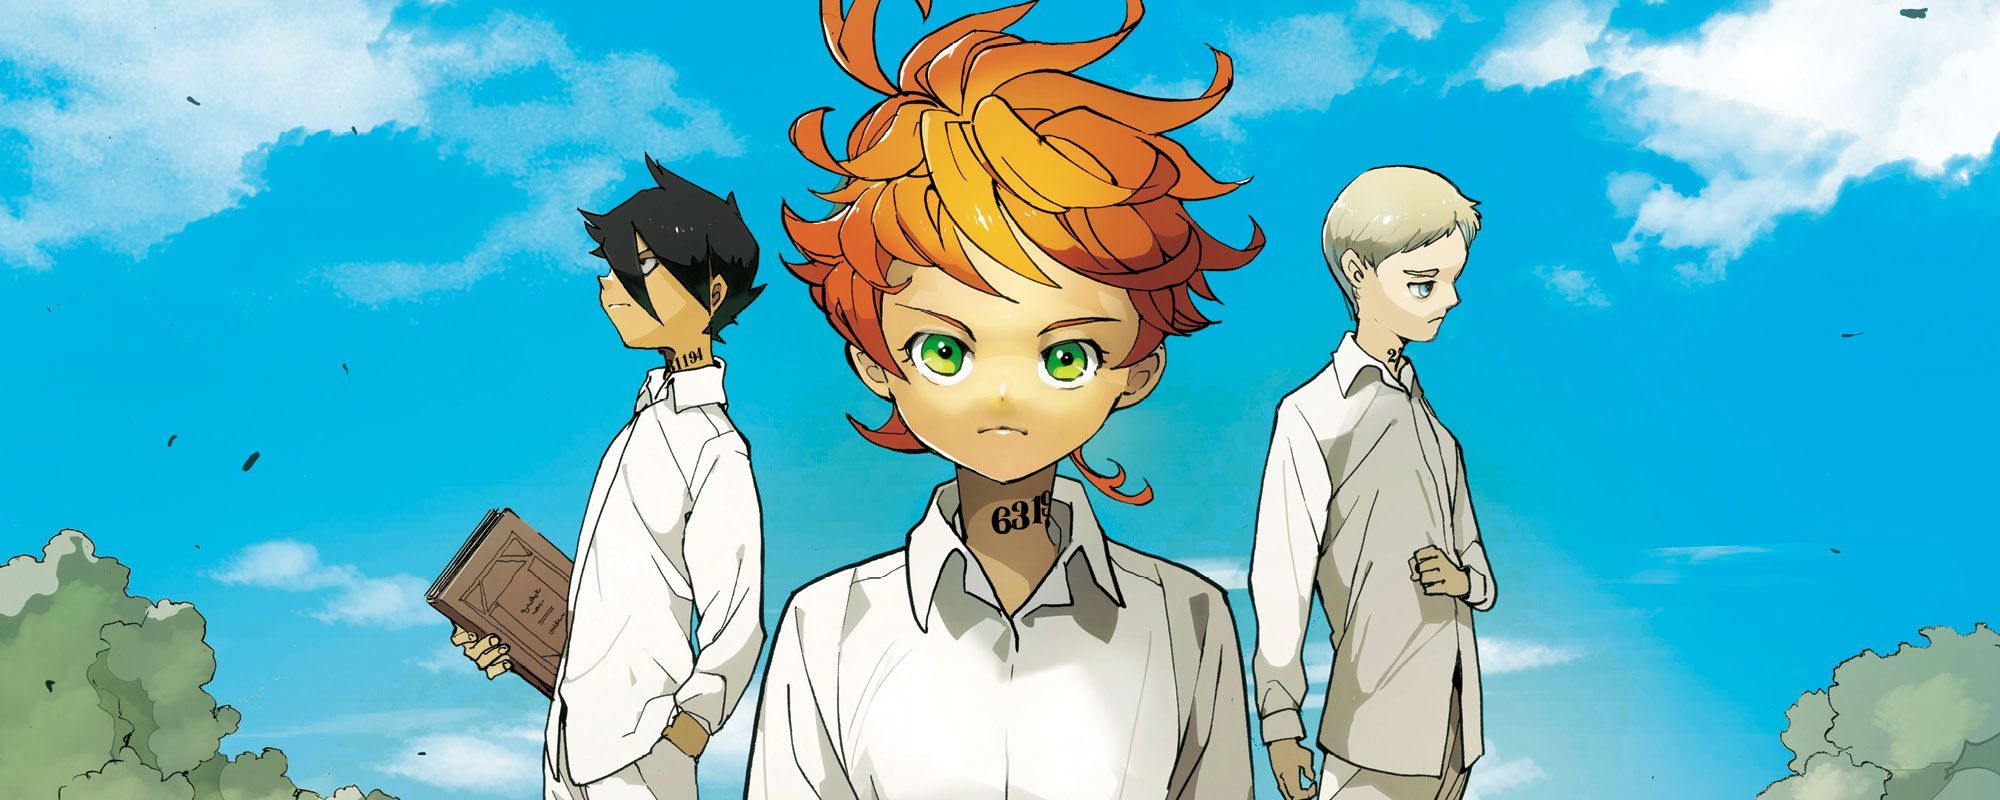 THE PROMISED NEVERLAND Anime Series Reveals New Commercial